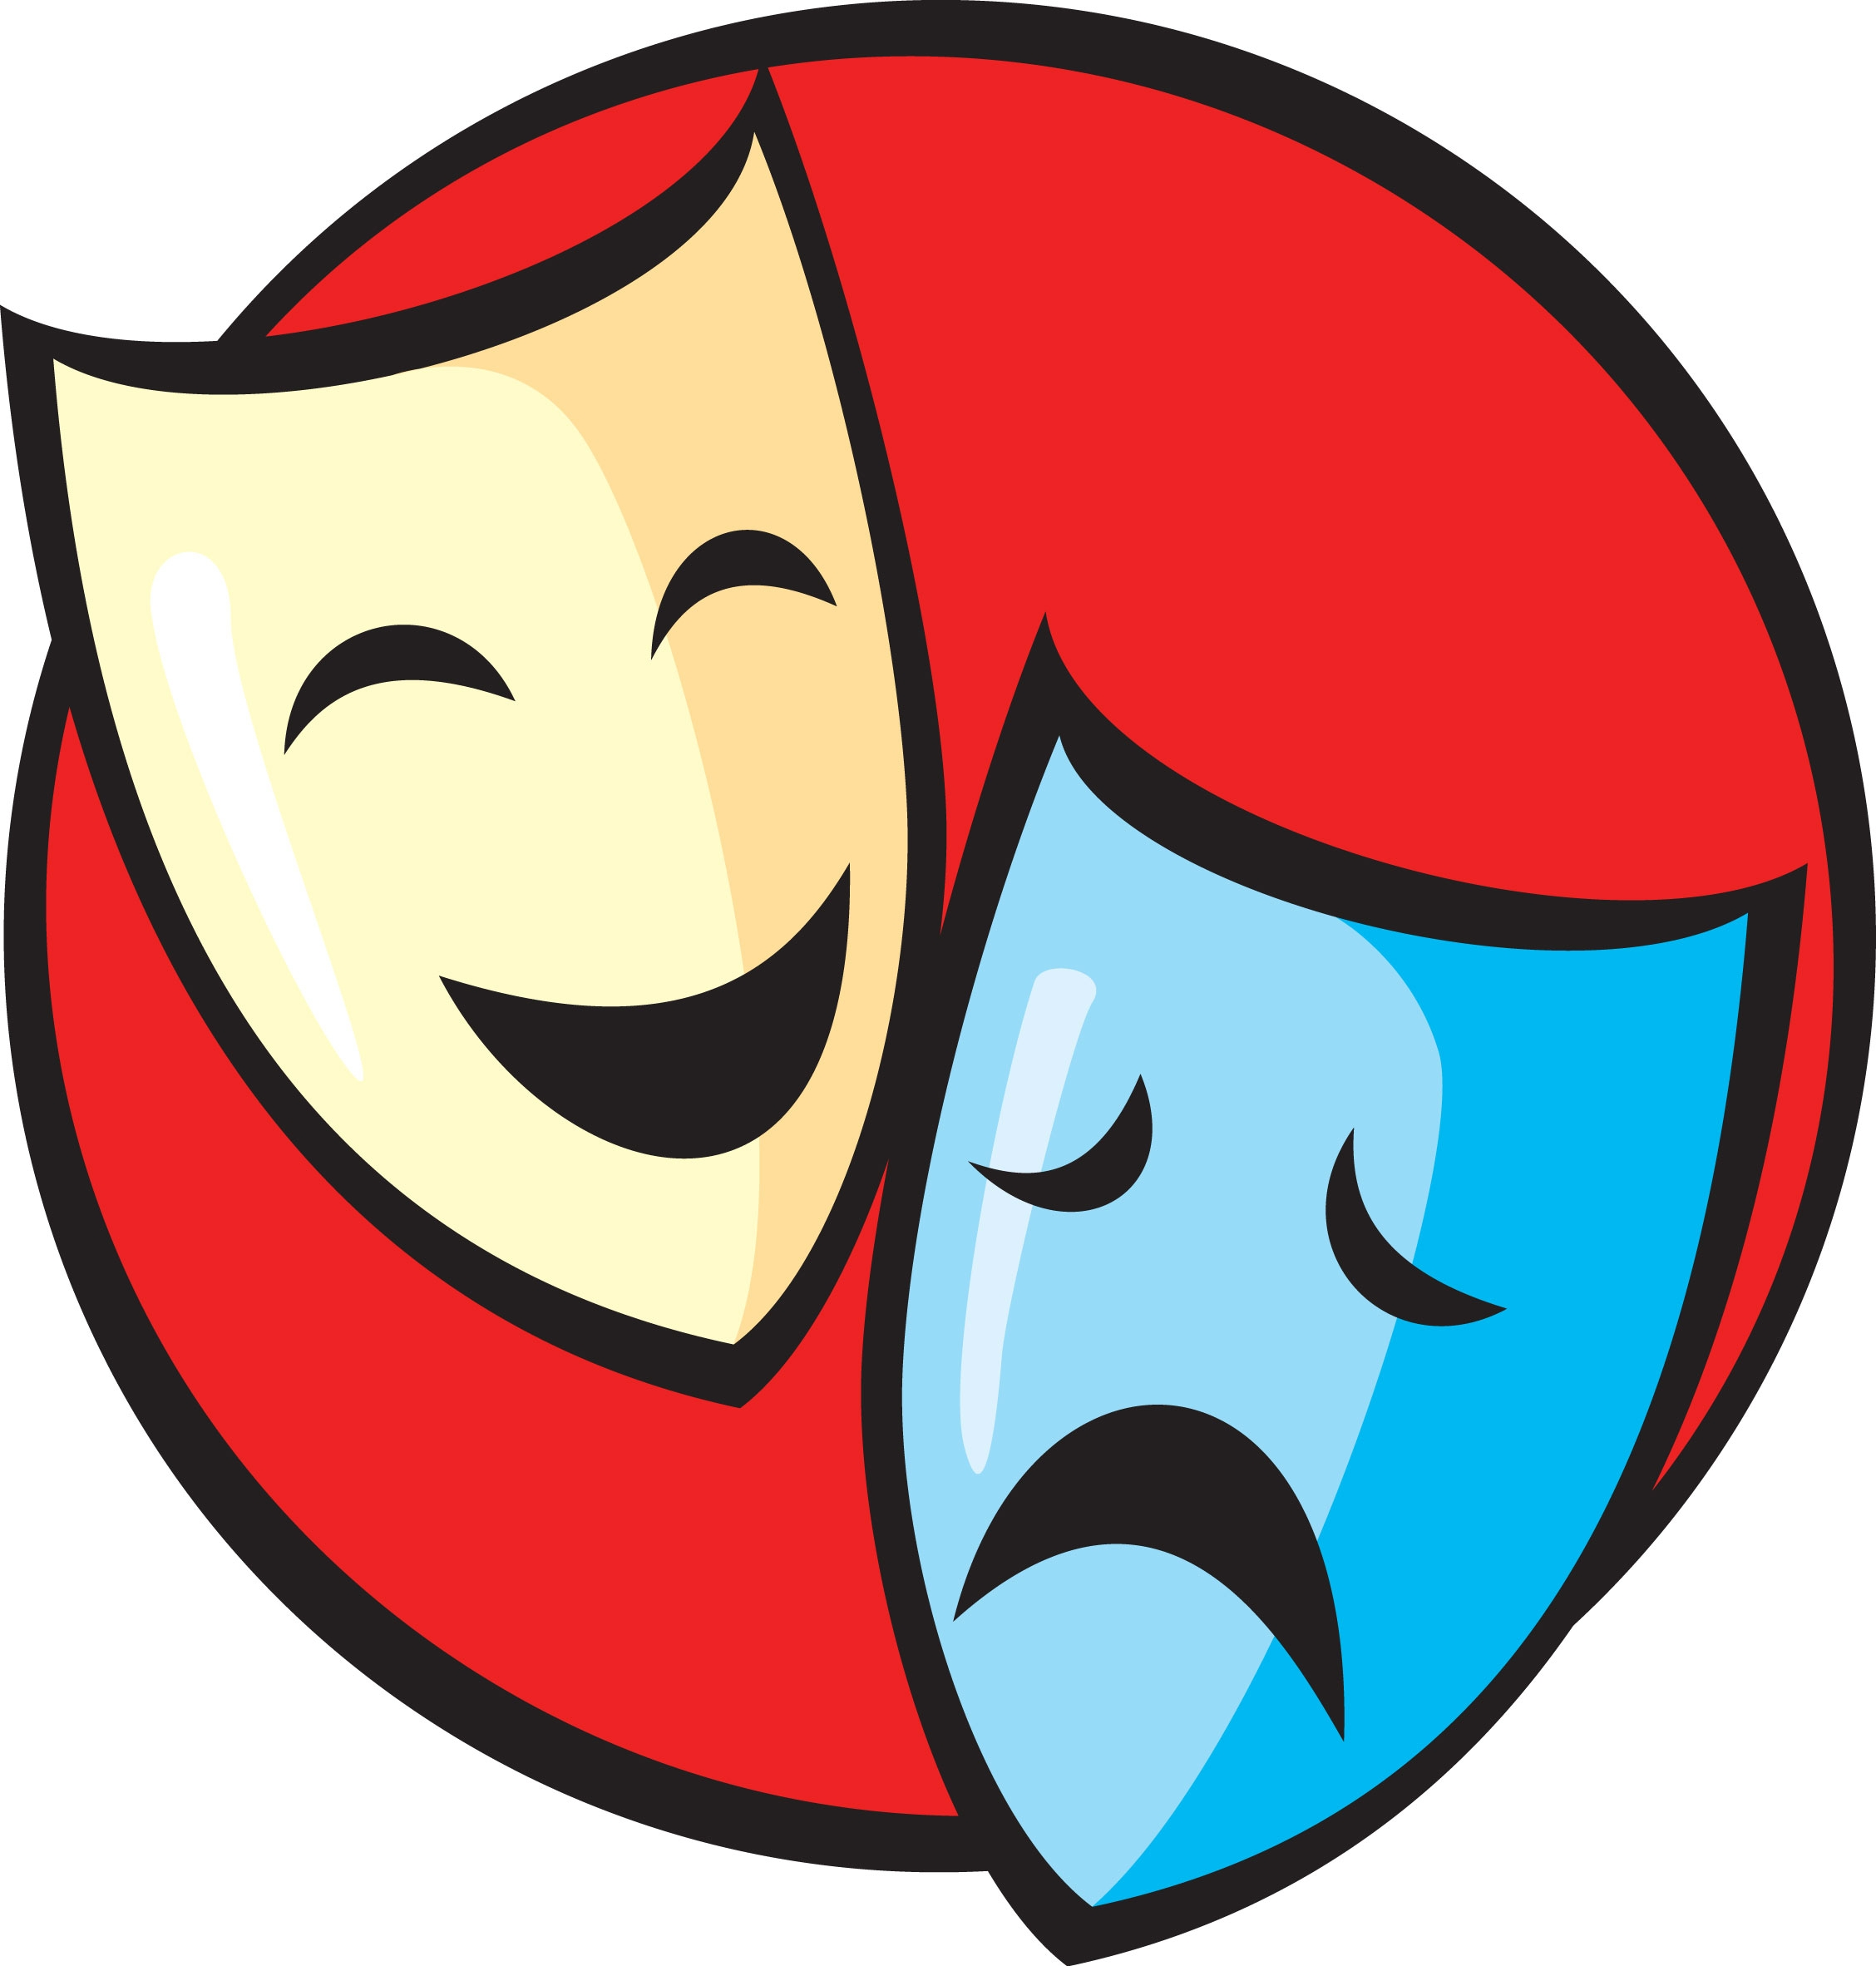 Clipart Of Theatre.